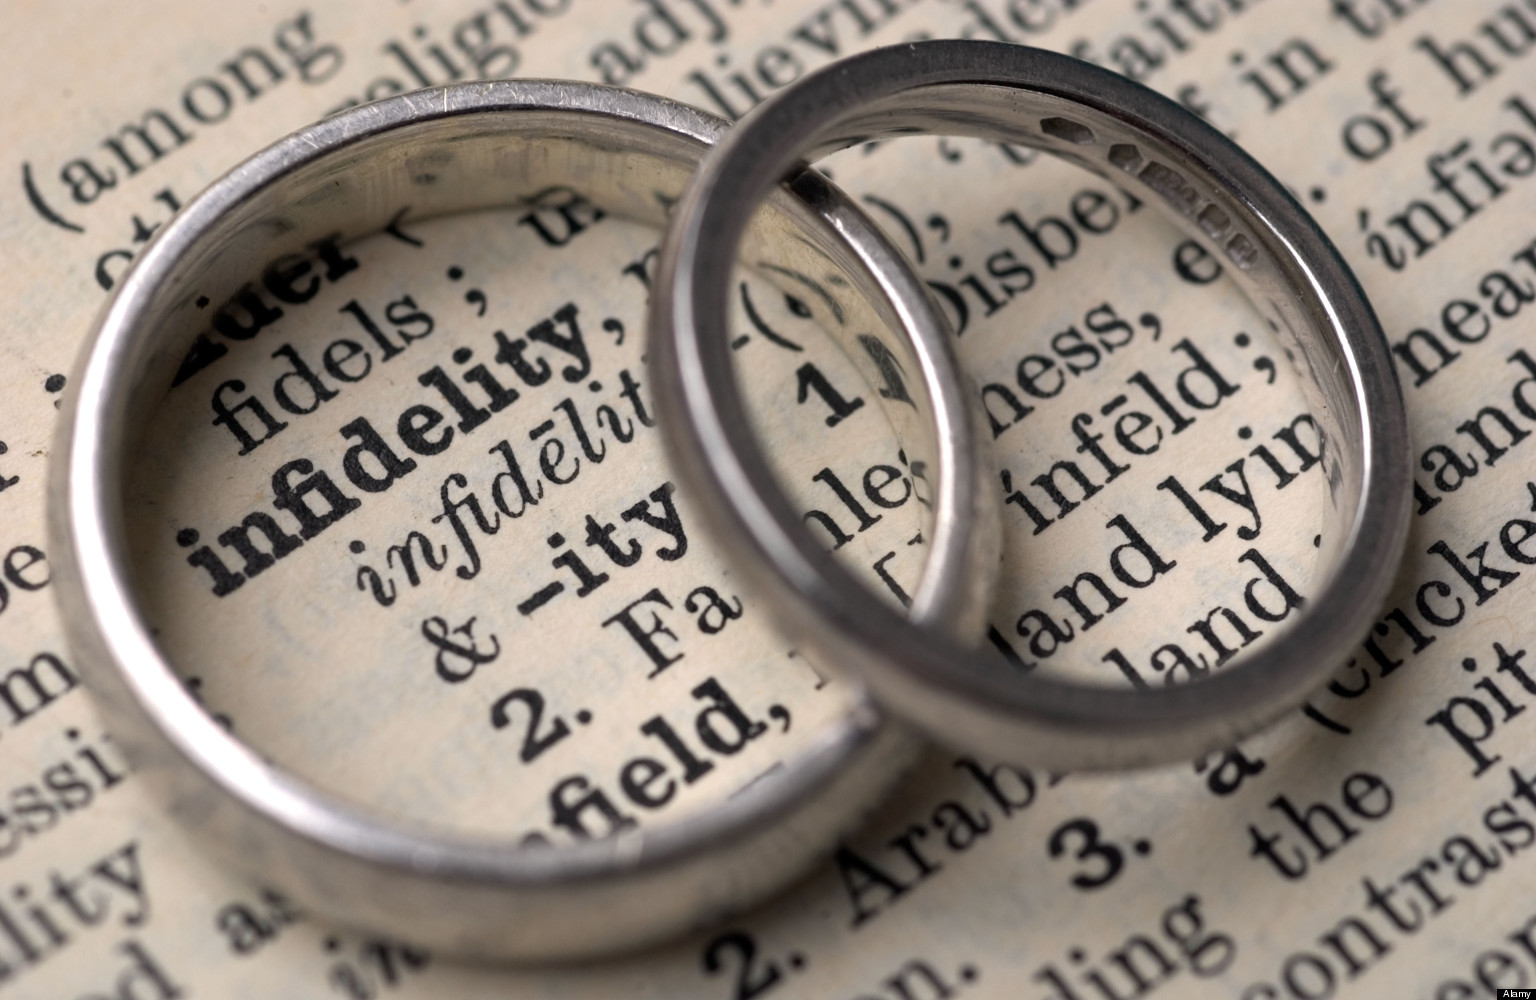 Marital Infidelity Still Illegal In Colorado But May Be